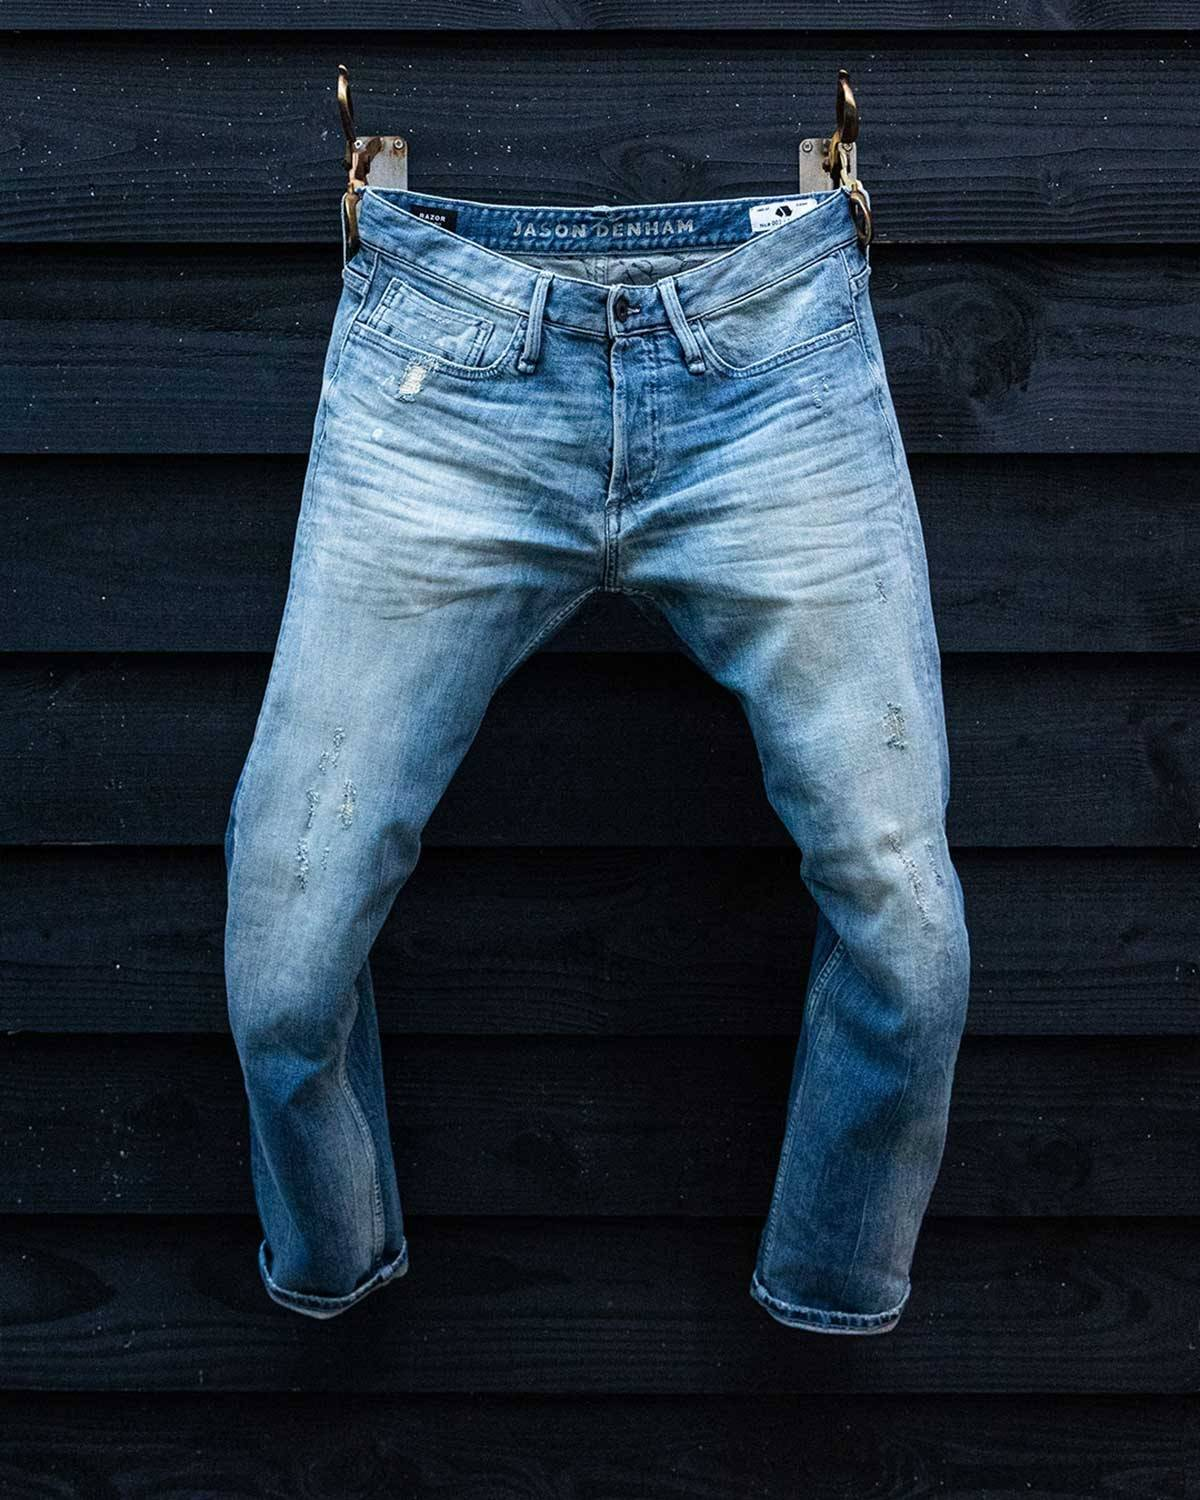 World's first biodegradable stretch denim unveiled